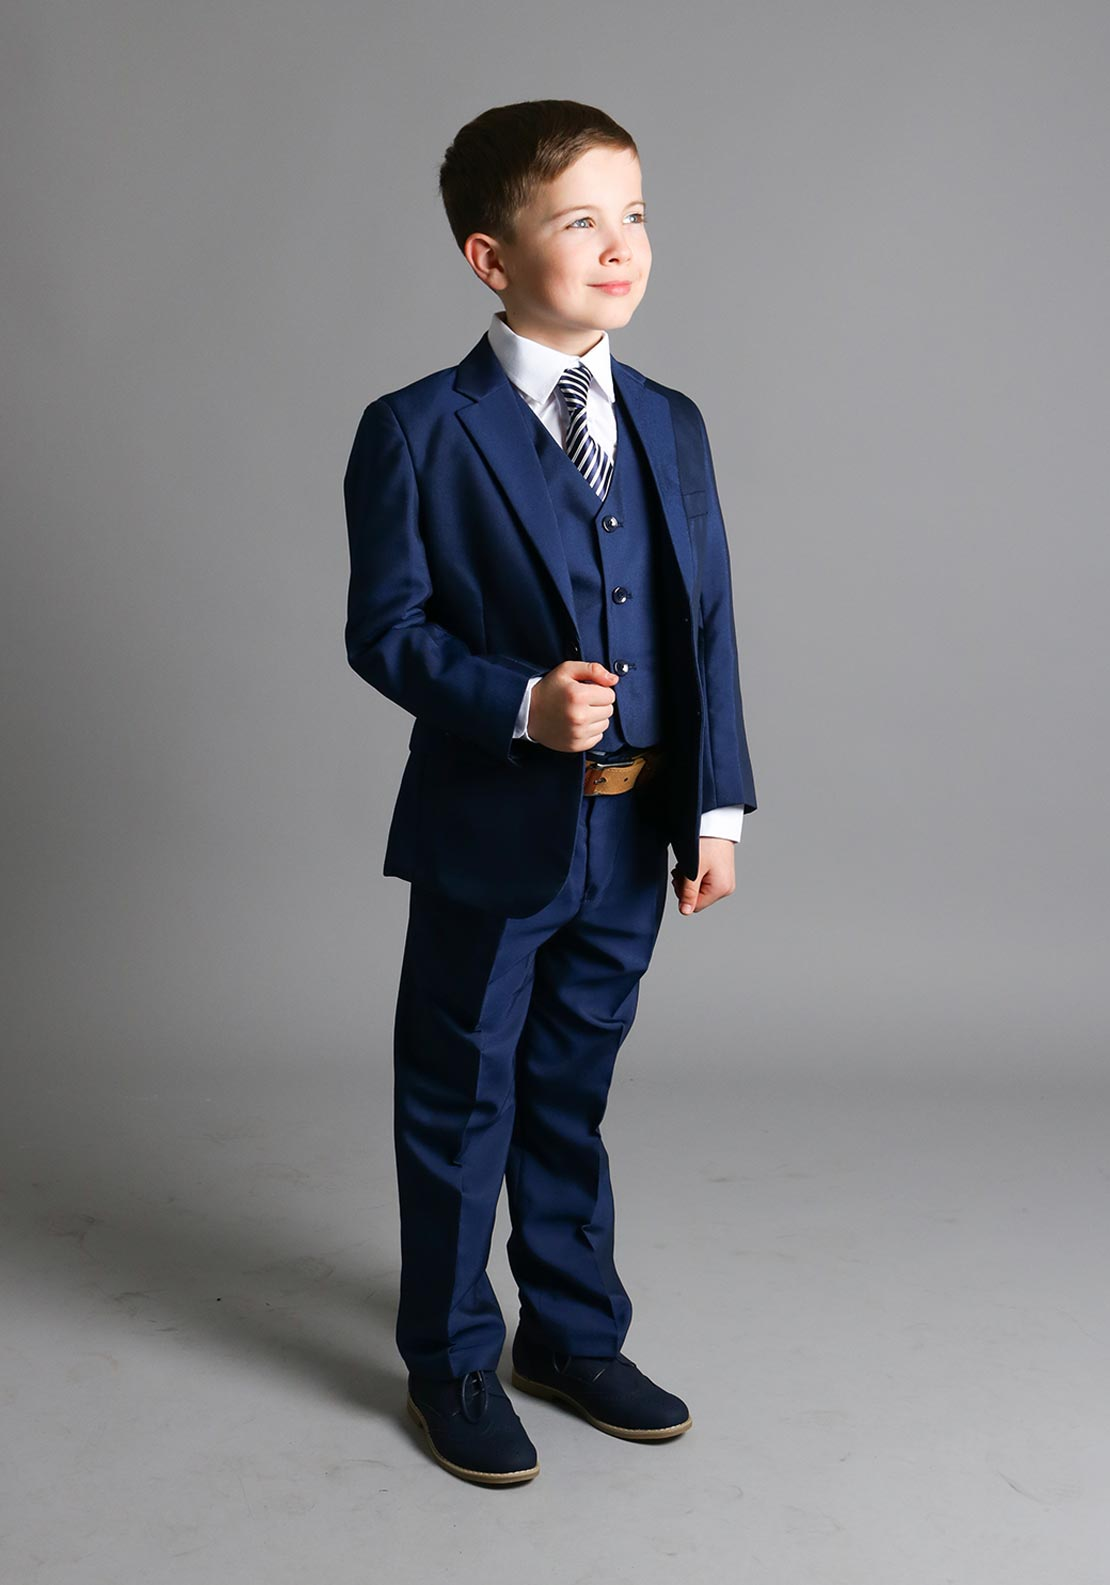 McElhinneys 3 Piece Navy Boys Suit with Free Shirt and Tie